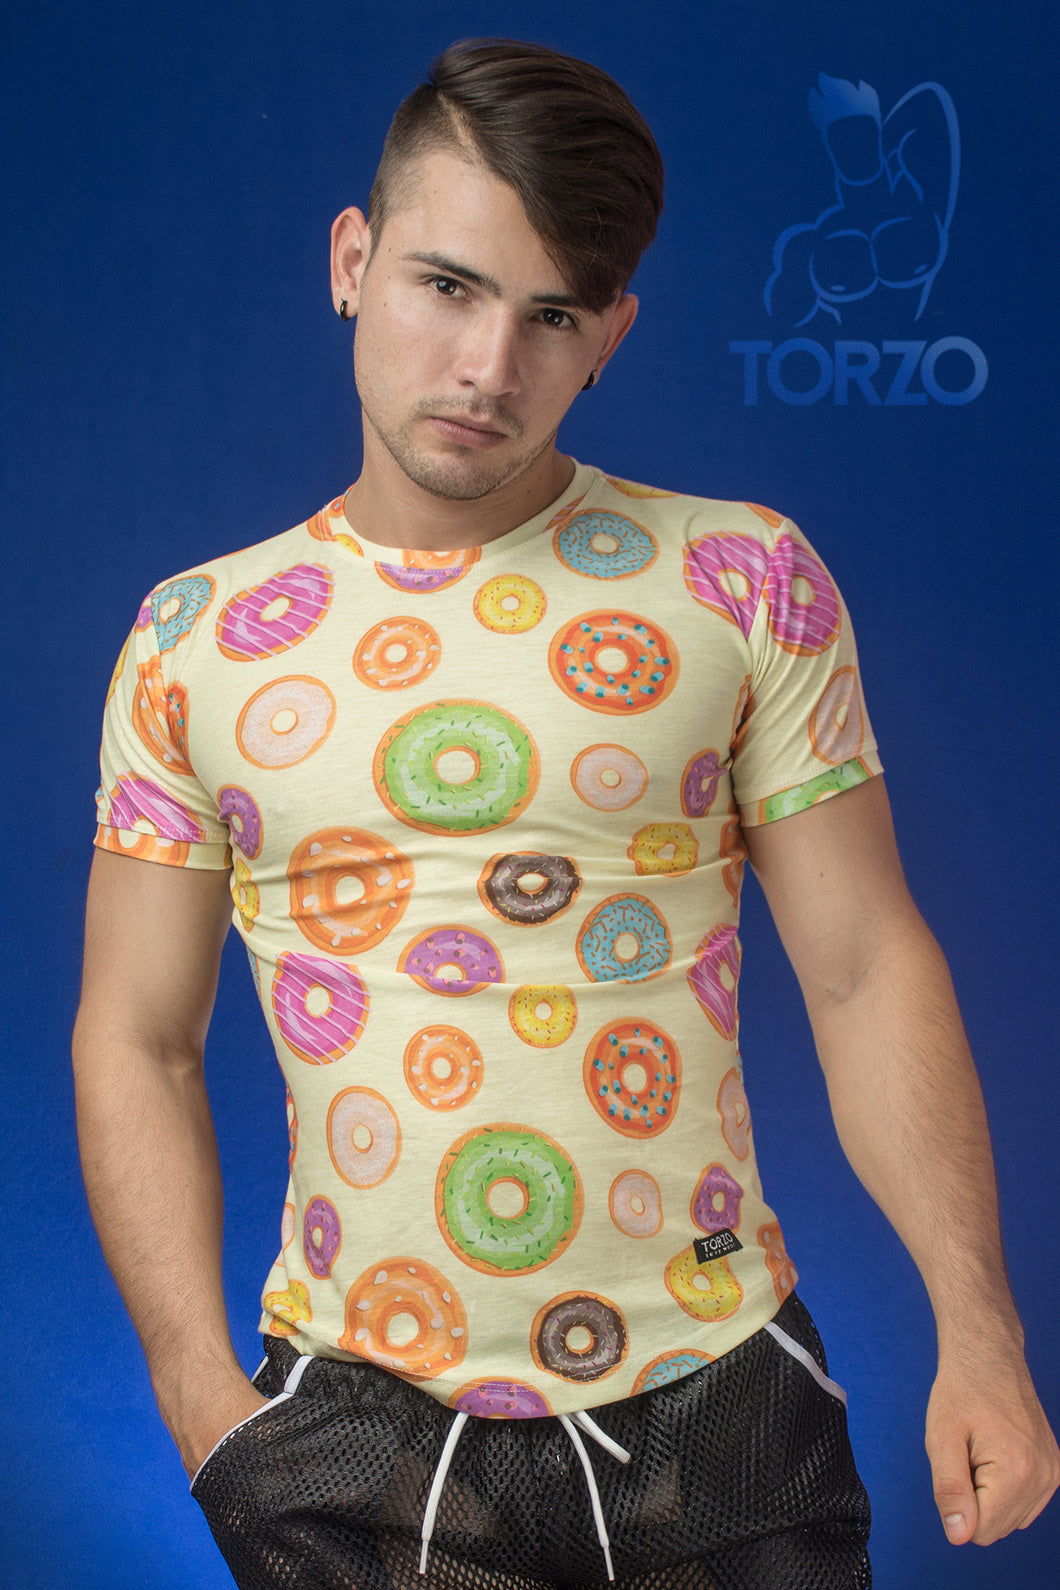 PLAYERA. Donas amarillo